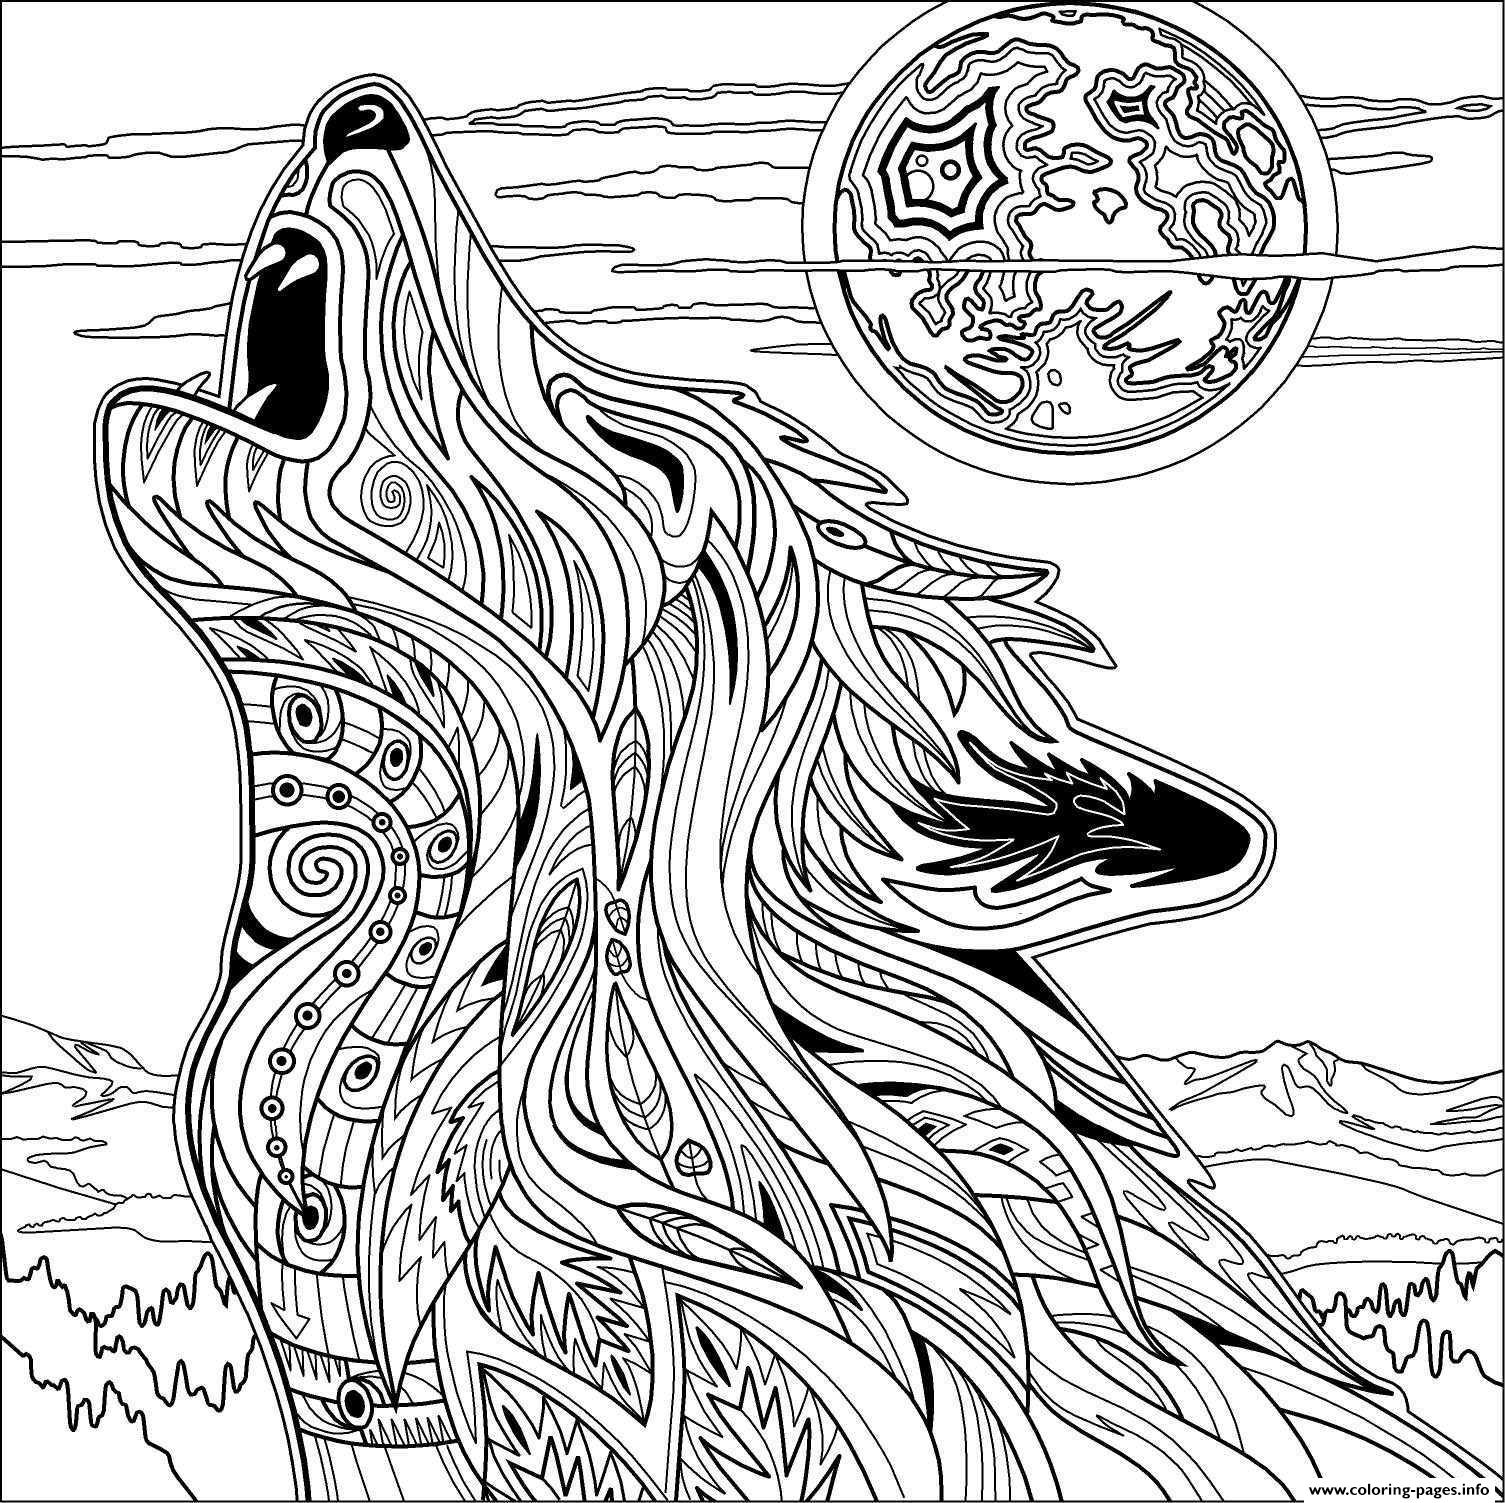 Coloring Pages For Adults: Wolf For Adult Coloring Pages Printable